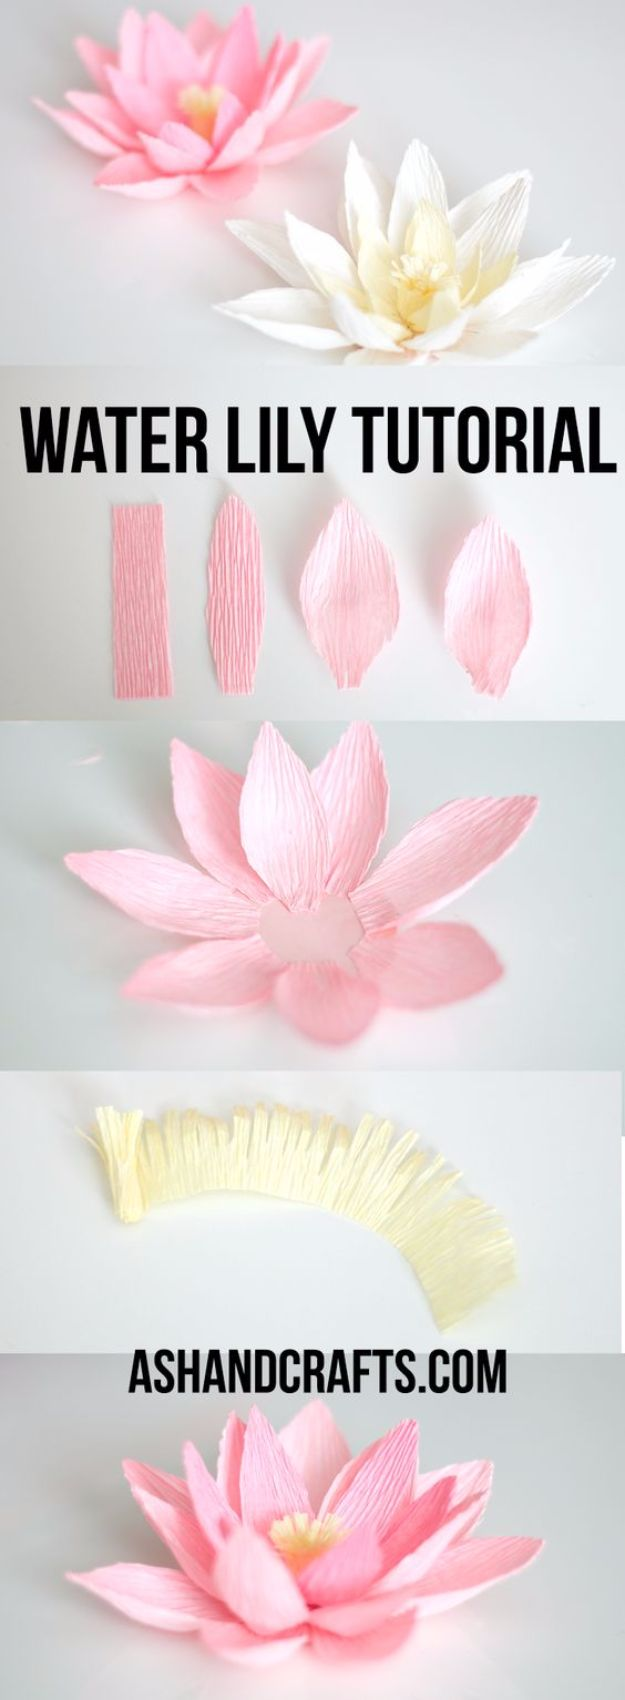 DIY Paper Flowers - Crepe Paper Water Lily - How To Make A Paper Flower - Large Wedding Backdrop for Wall Decor - Easy Tissue Paper Flower Tutorial for Kids - Giant Projects for Photo Backdrops - Daisy, Roses, Bouquets, Centerpieces - Cricut Template and Step by Step Tutorial http://diyjoy.com/diy-paper-flowers